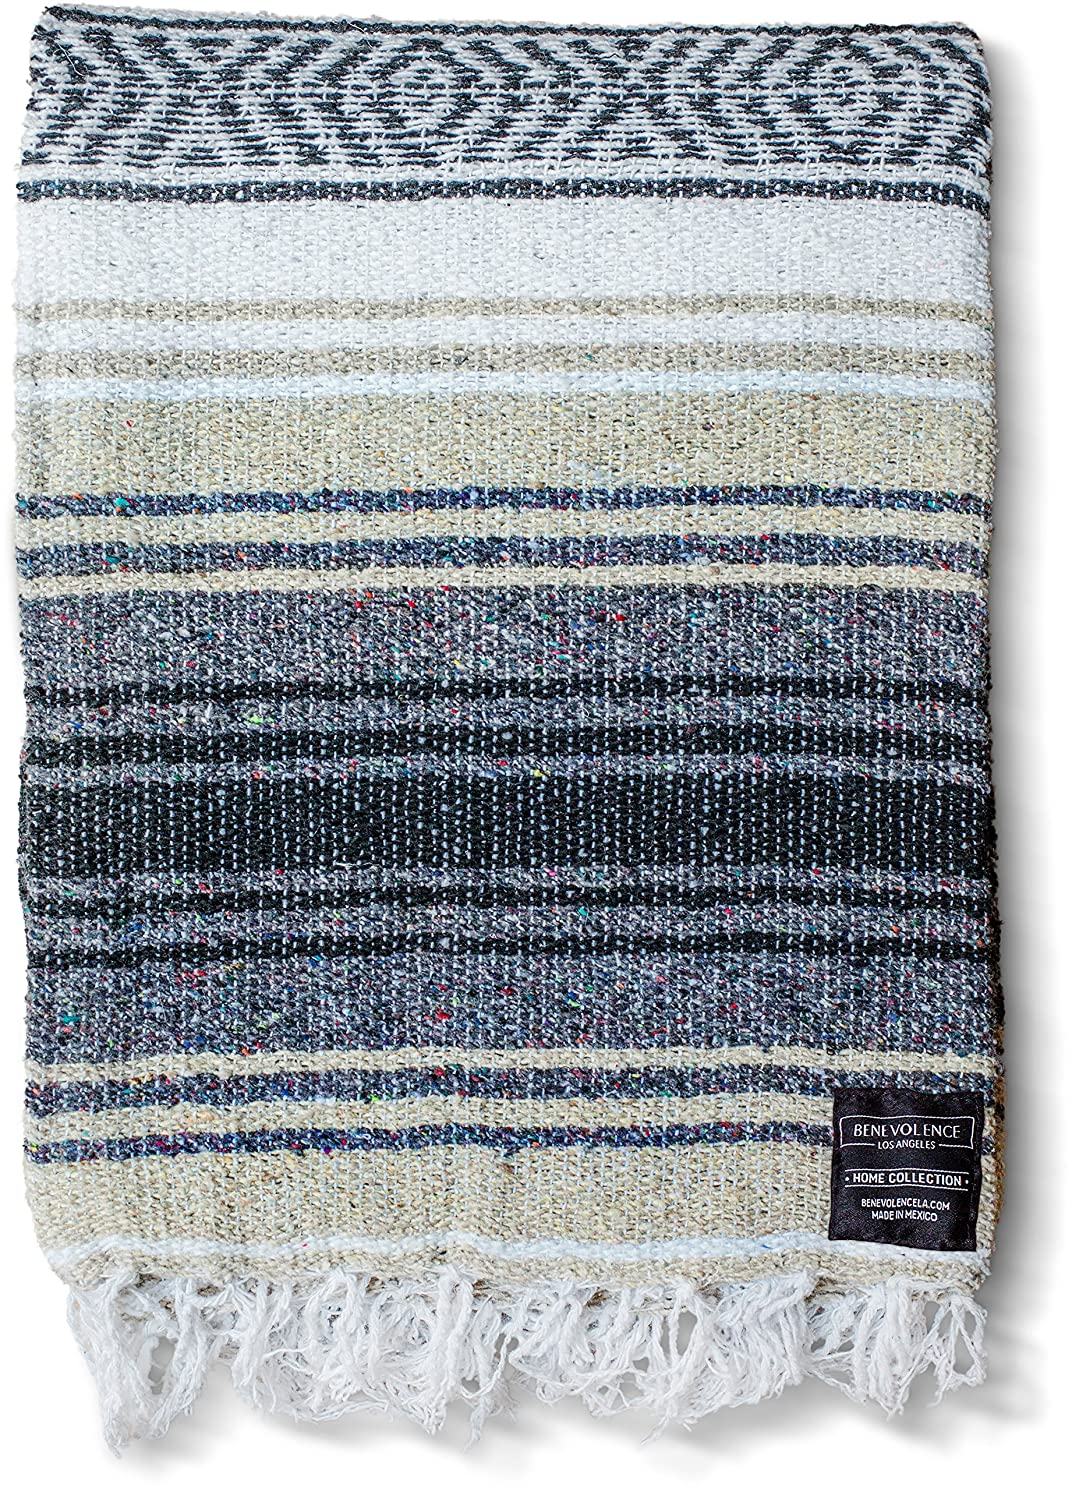 Mexican Blanket - Authentic Falsa Thick Soft Woven Acrylic Yoga Serape or as Beach Throw, Picnic, Camping, Travel, Hiking, Adventure, Pillow, Blankets in Pink, Mint, Sand, Gray, Sky Blue